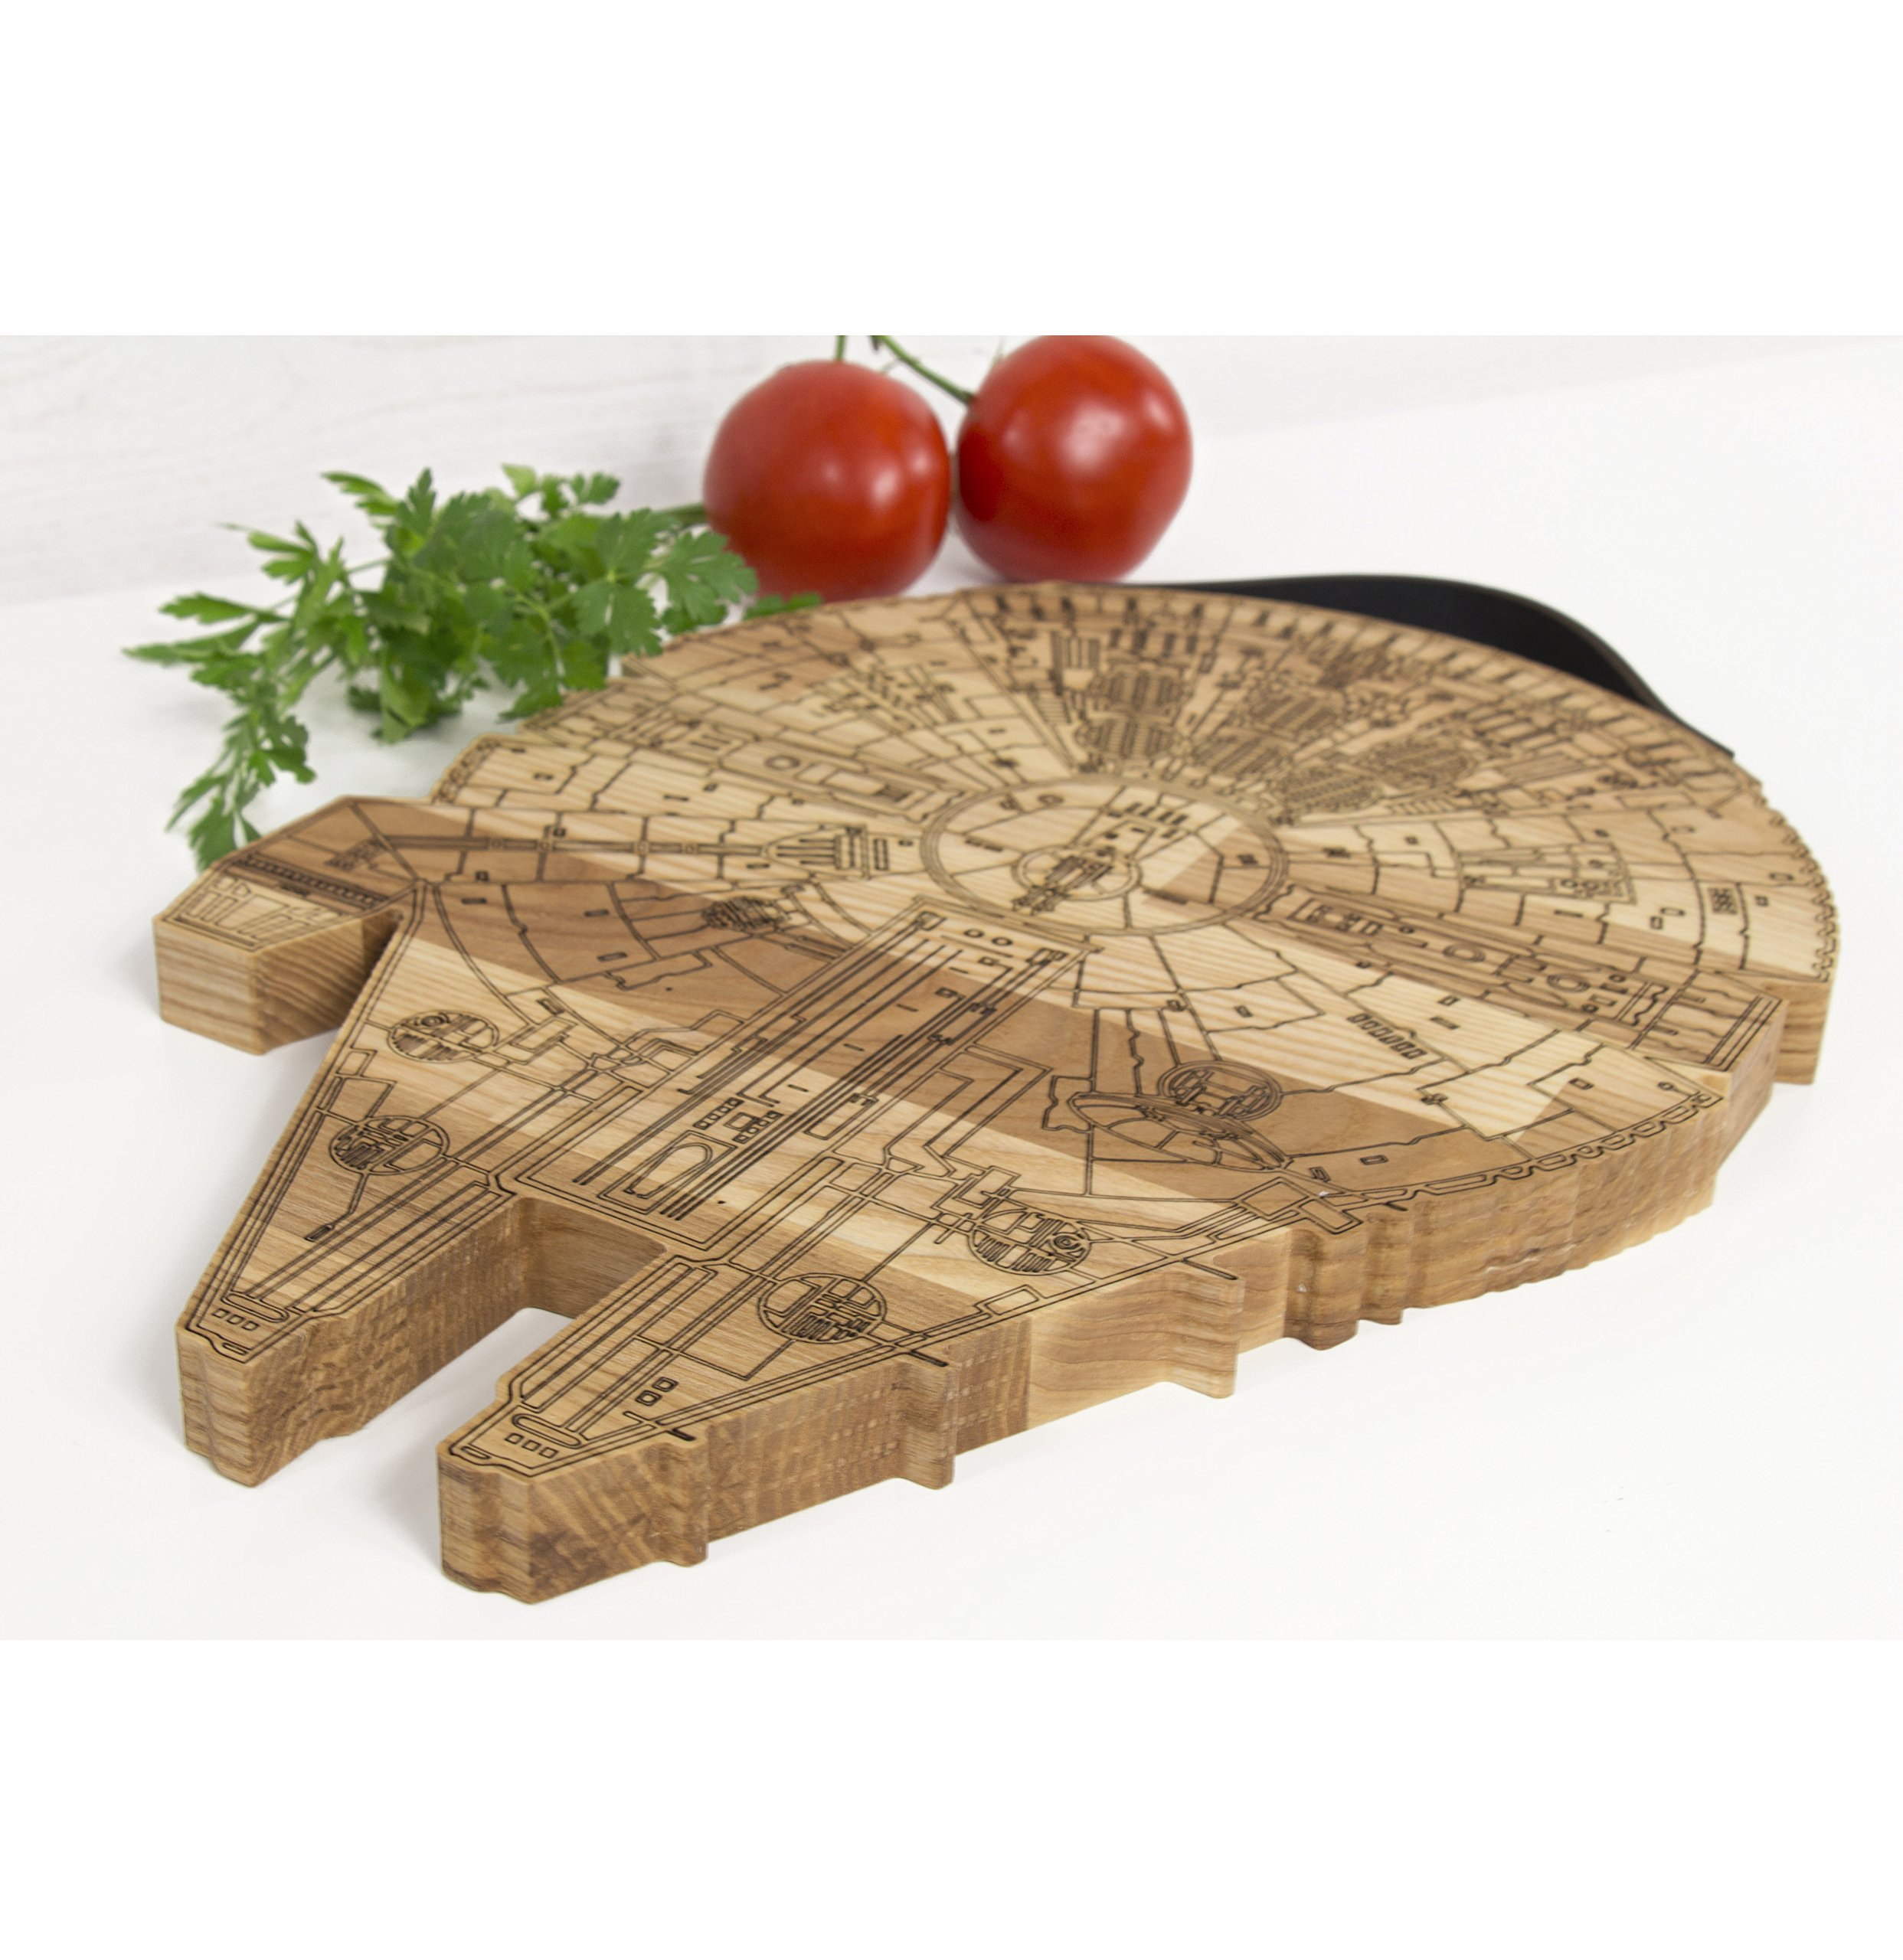 Millennium Falcon Board - Wooden Cutting Board - Engraved Wooden Plate - Rustic Cutting Board - Futuristic Serving Platter - Valentines Gift